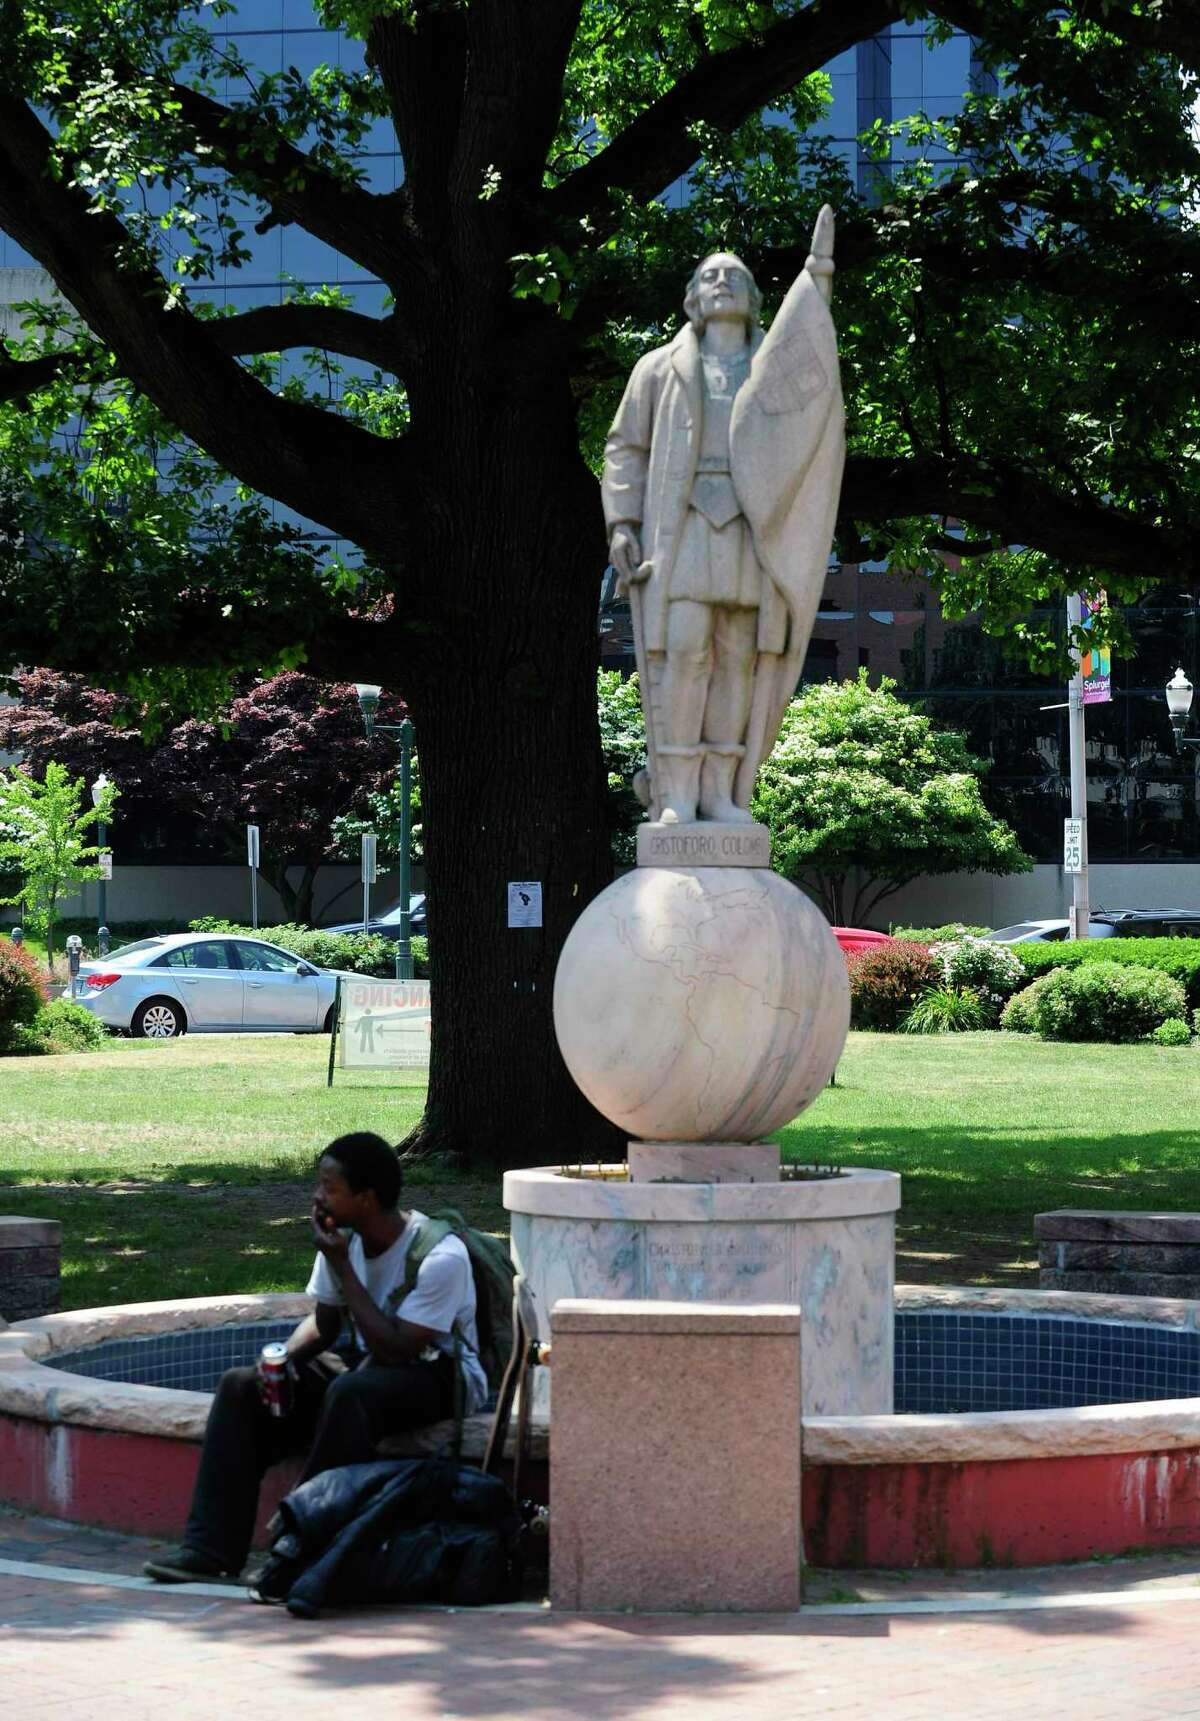 The City of Stamford has received numerous requests calling for the removal of the Christopher Columbus statue at Columbus Park in Stamford.